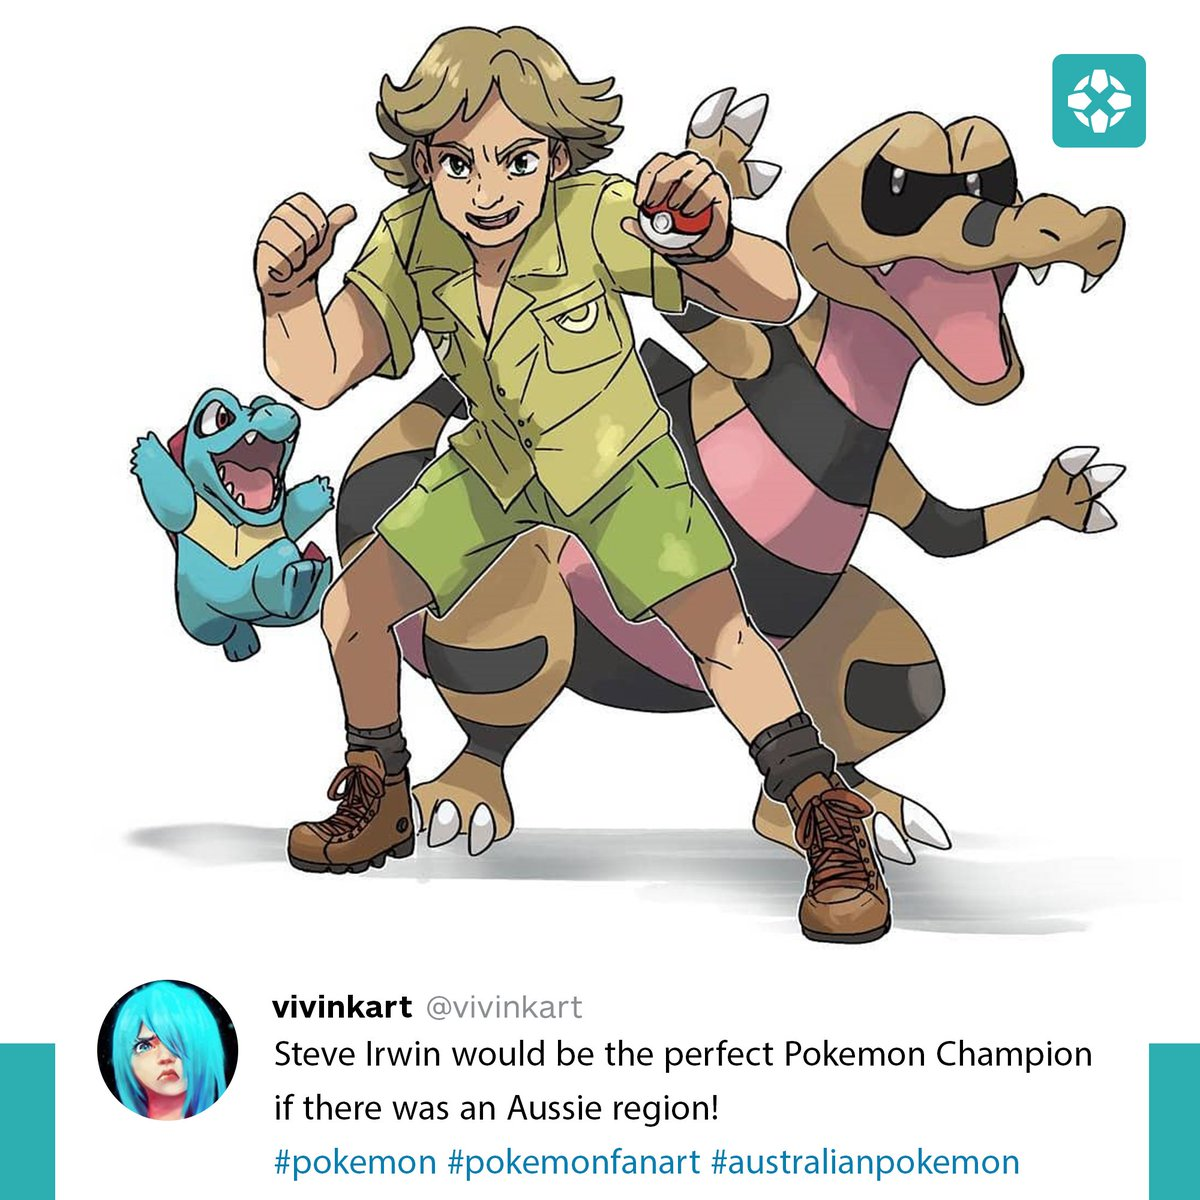 We couldn't agree more with @vivinkart ! What other regions would you like to have a Pokemon adventure in?